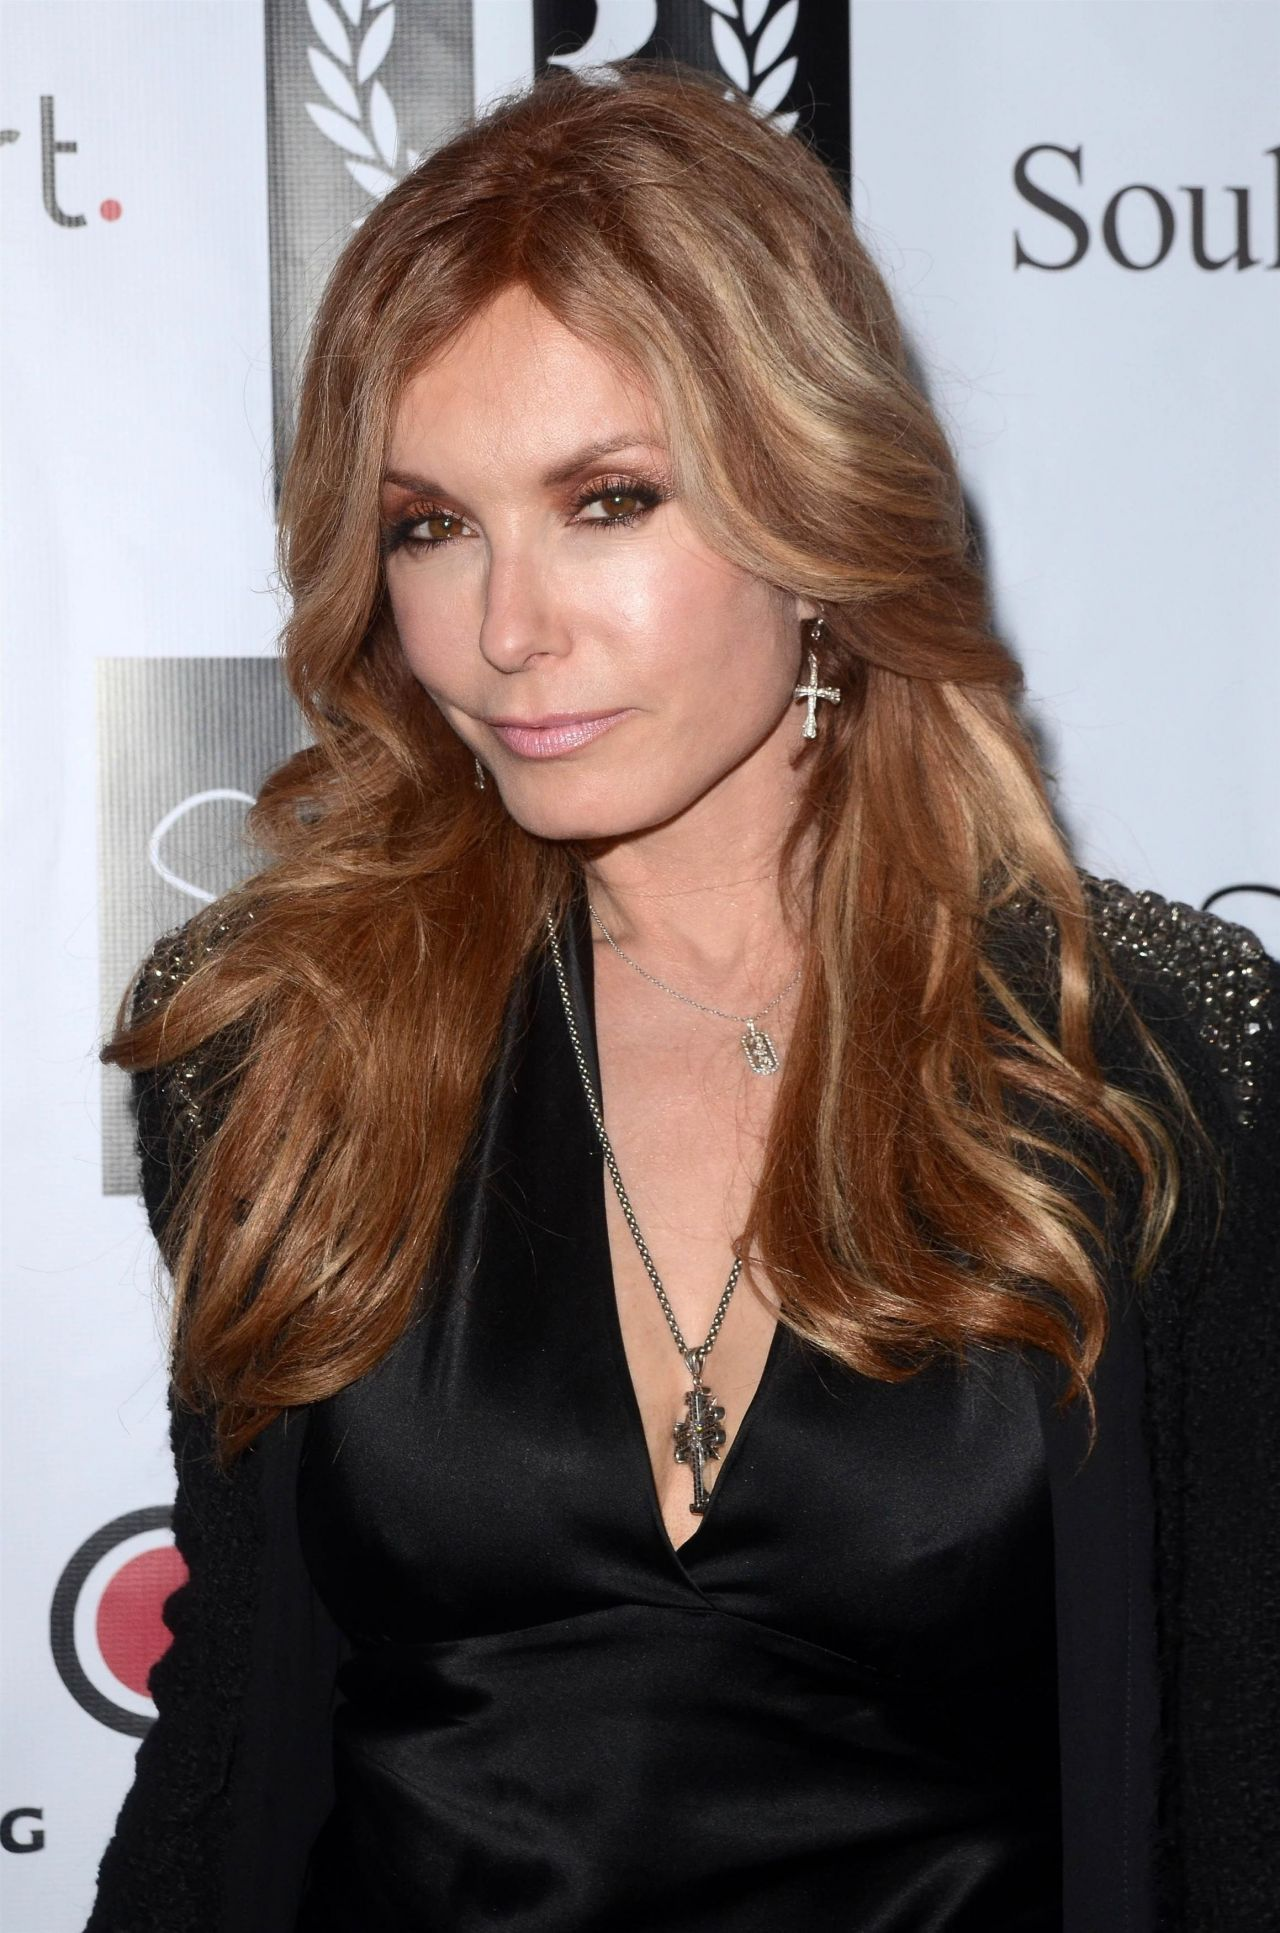 Tuesday Fast Five With Tracey E. Bregman | Soap Opera Digest